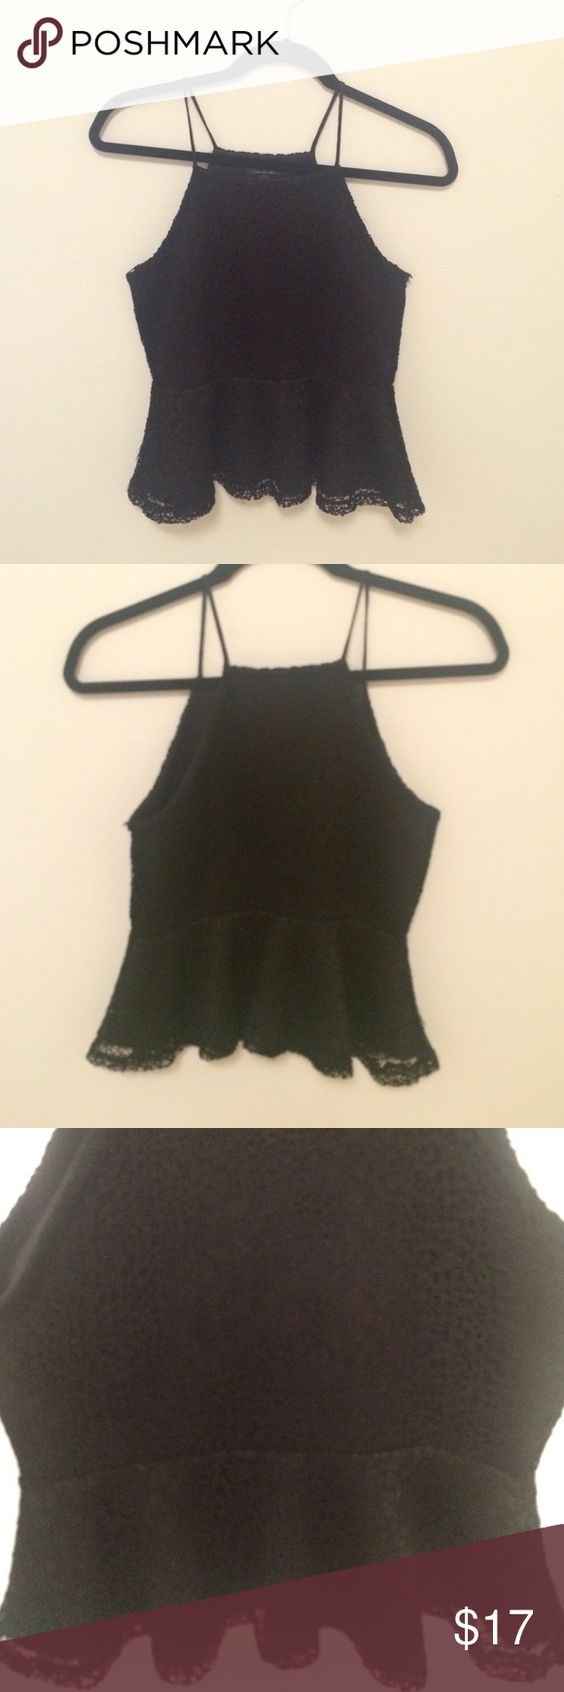 Black, lace-like peplum tank Very cute black peplum tank. The straps cut in at the shoulders so it's a flattering fit. Material is lace-like. A few threads are loose, but it's barely noticeable since the top is black. Topshop Tops Tank Tops